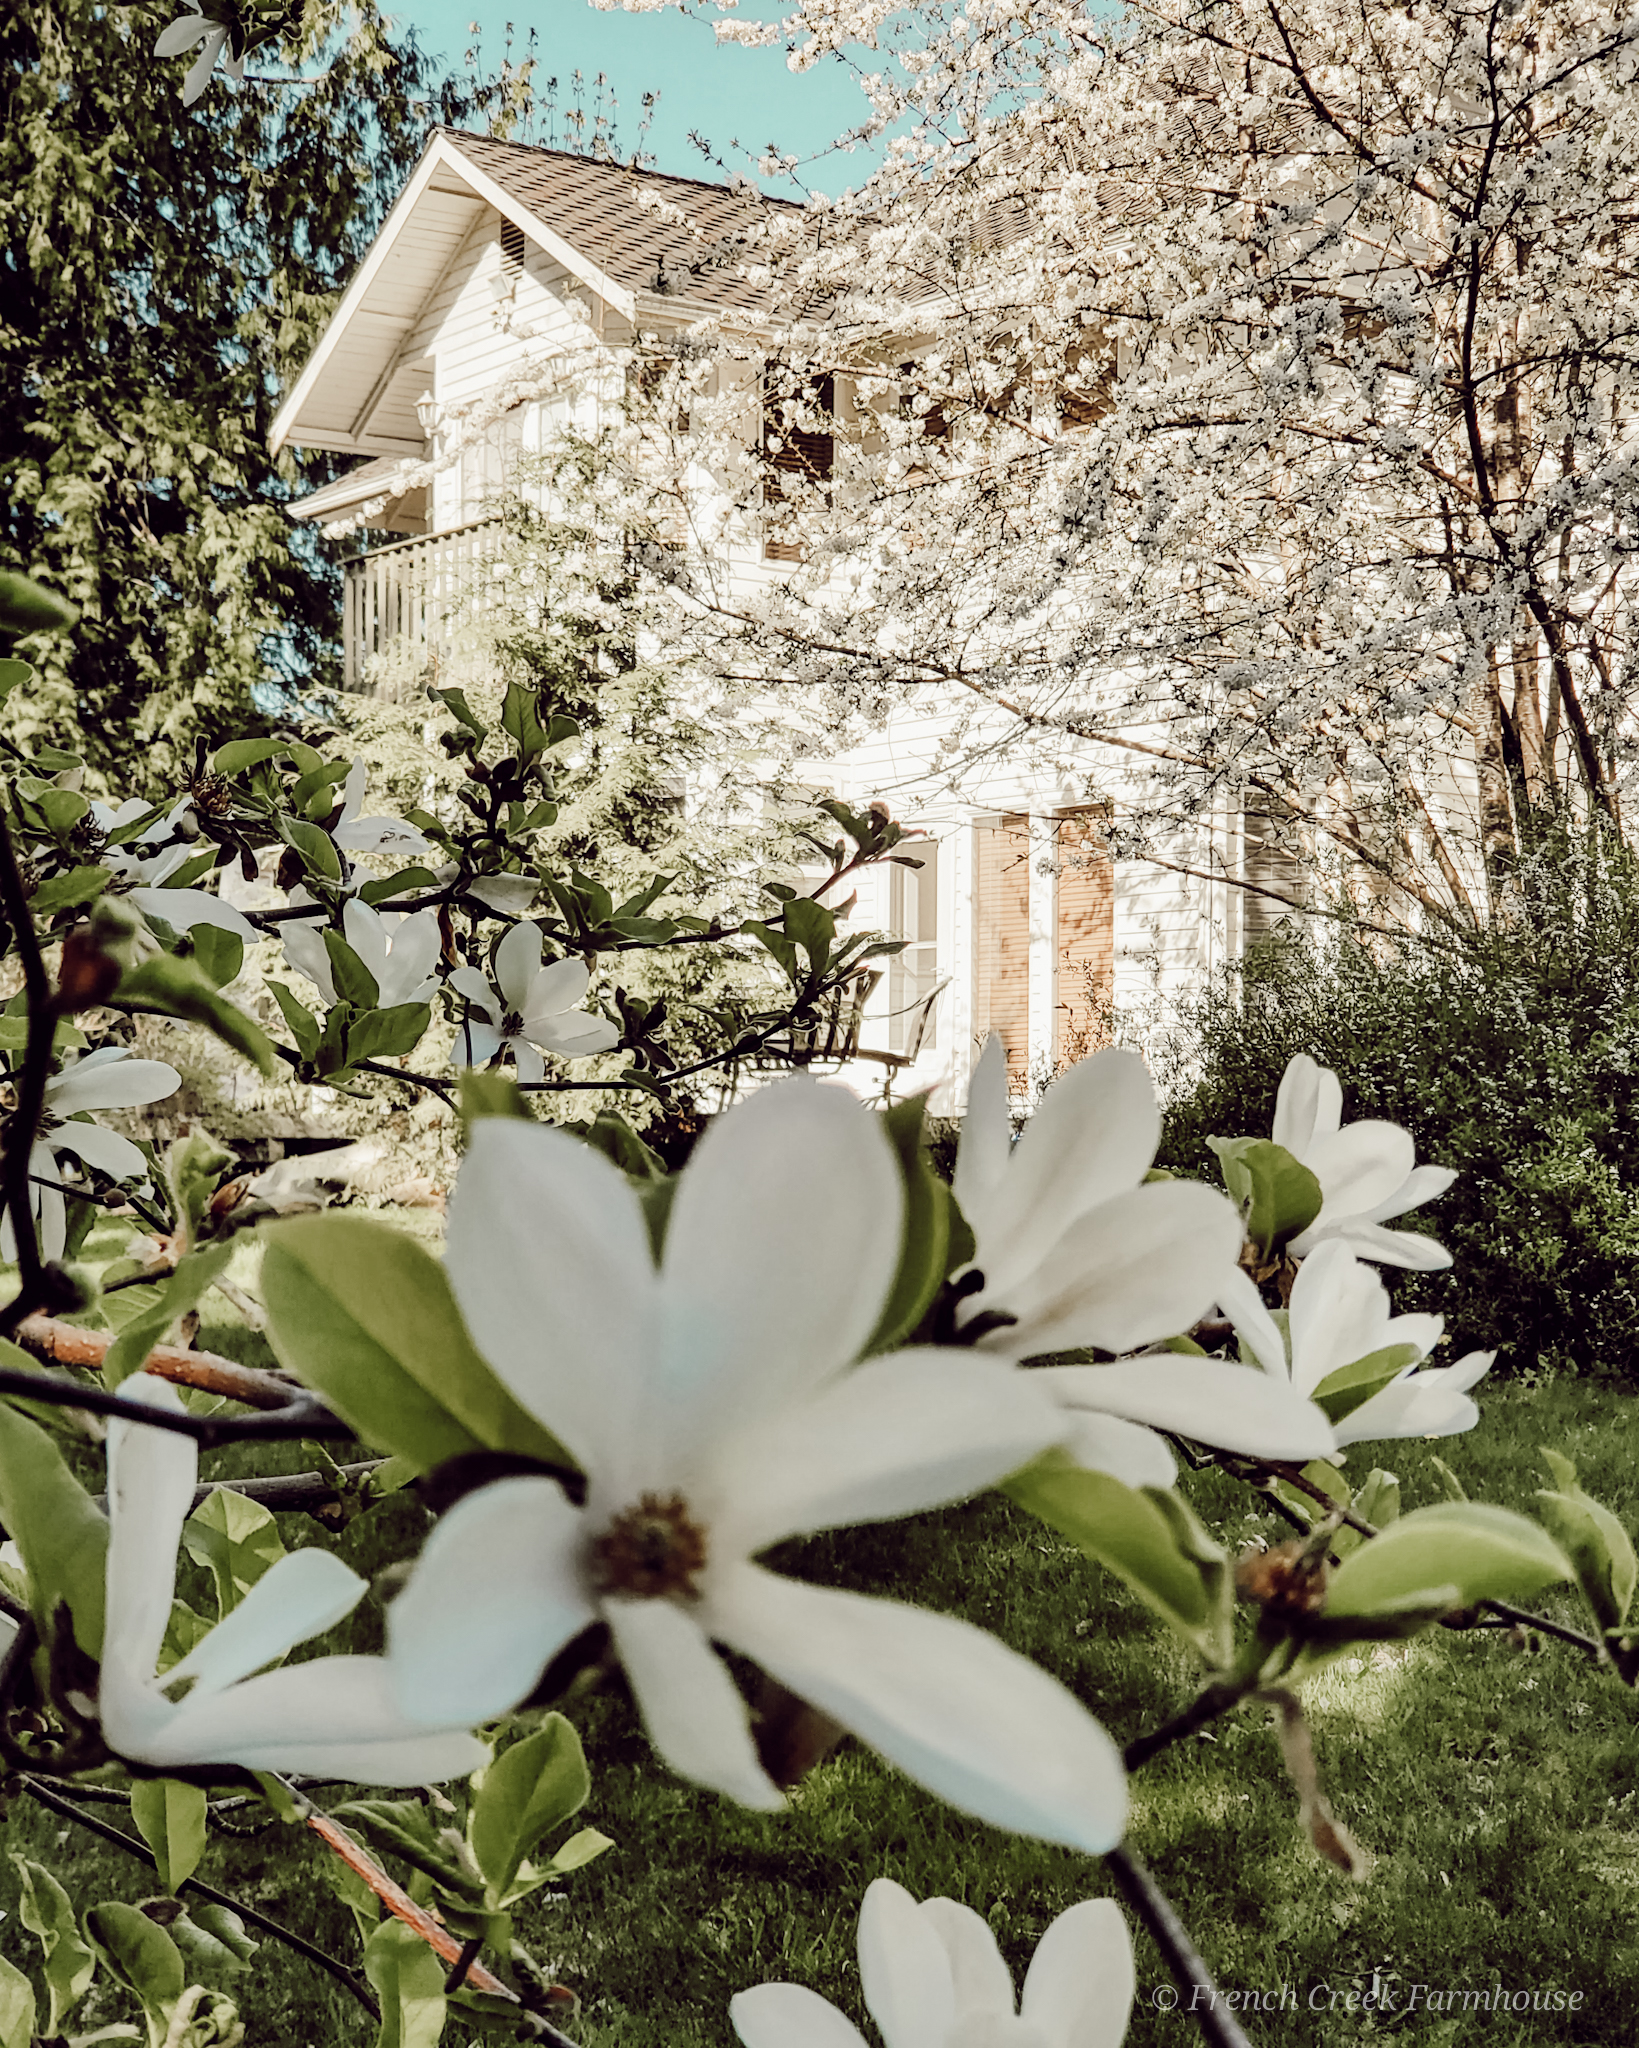 Our white farmhouse with spring trees in bloom | French Creek Farmhouse